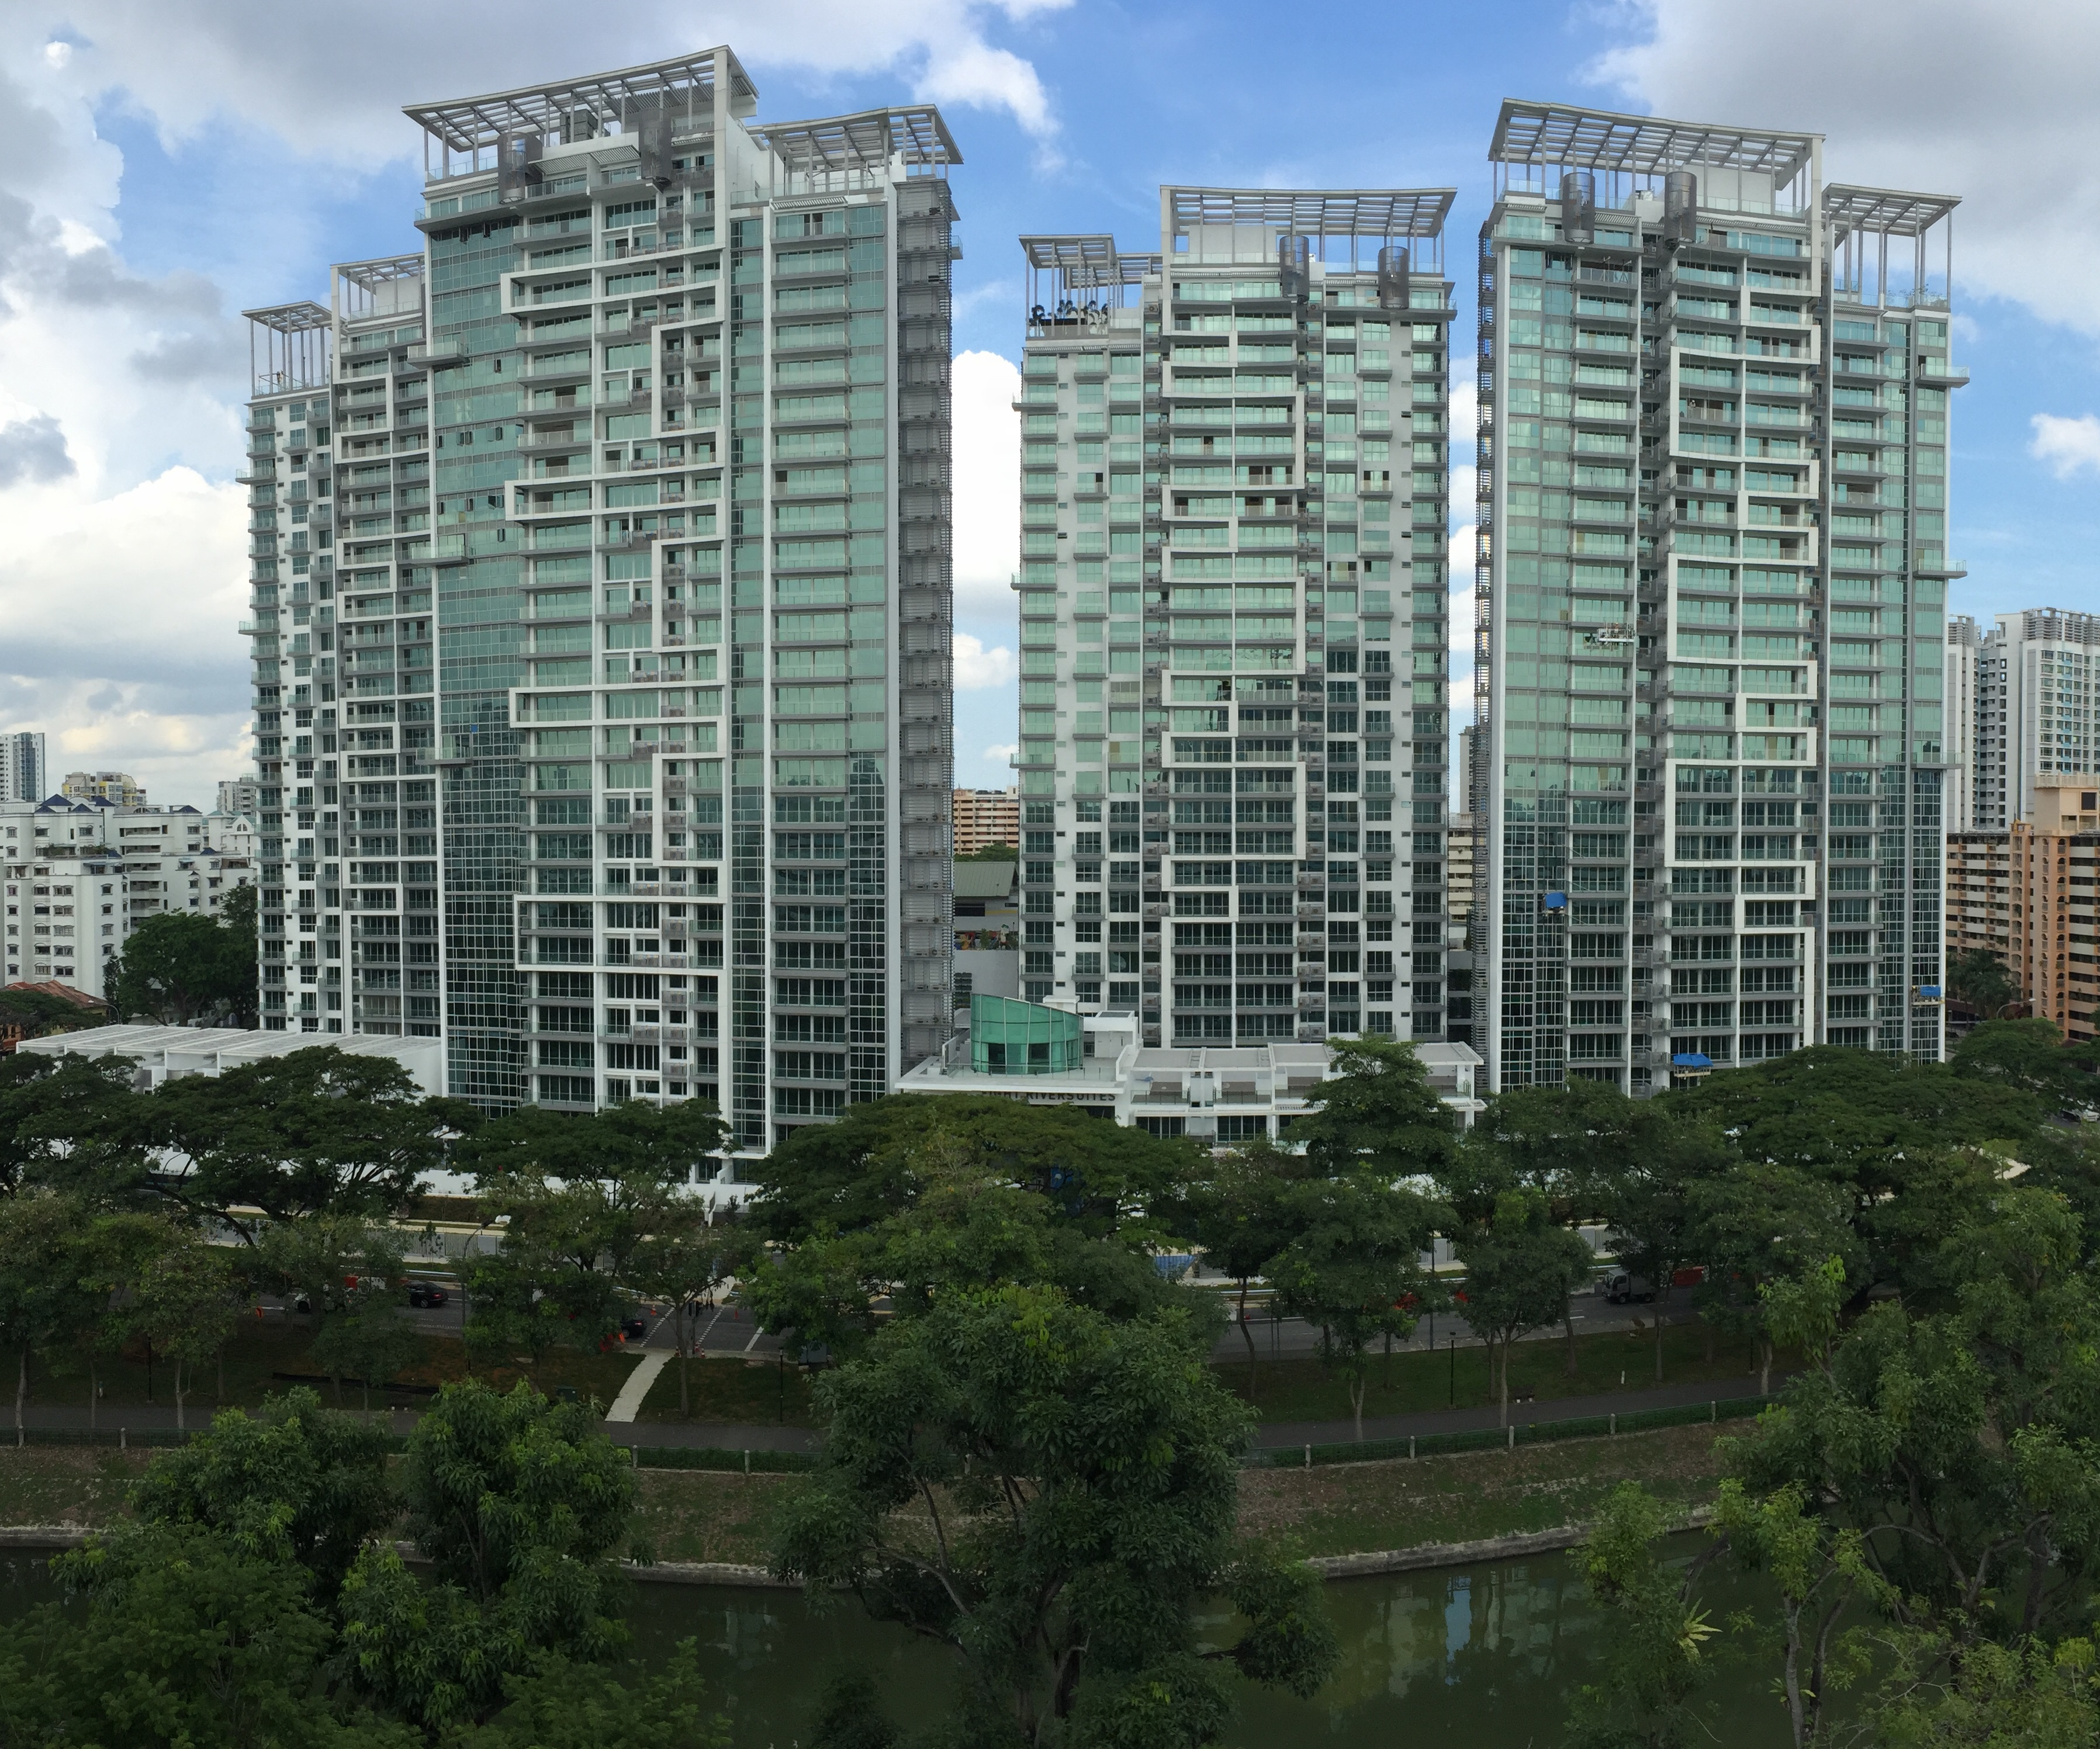 1 Bedroom For Rent Eight Riversuiteseight Riversuites